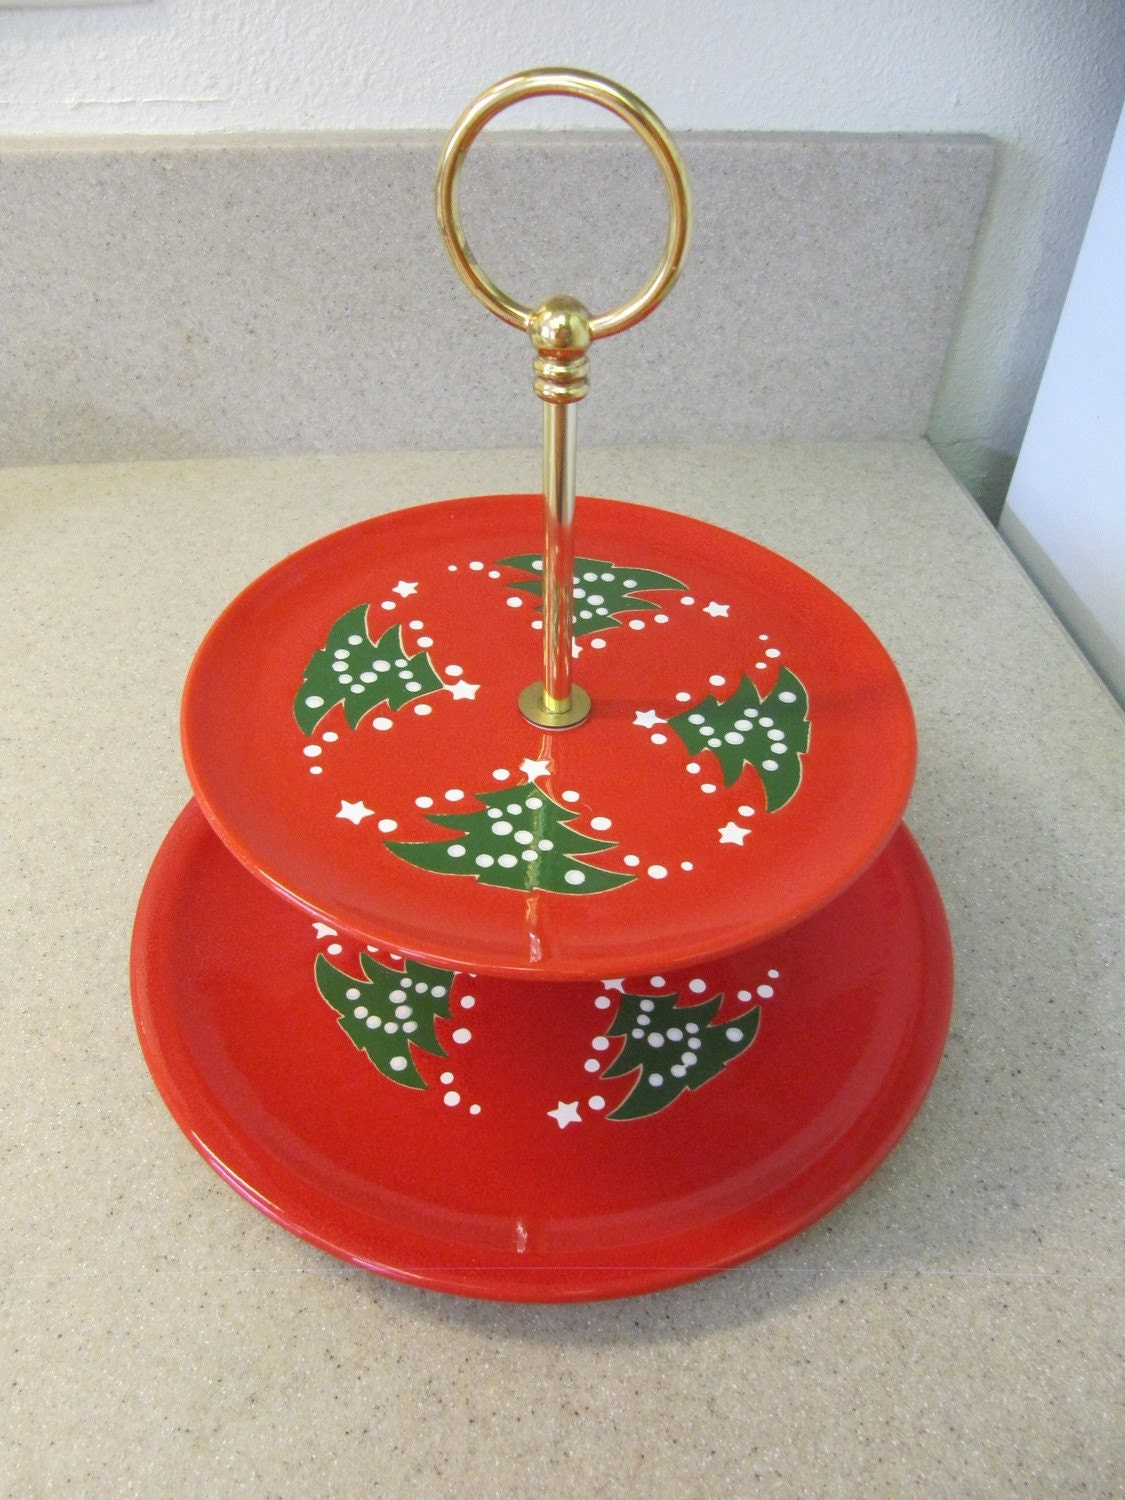 Vintage waechtersbach christmas tree 2 tier snack tray by for Christmas tree tray floor